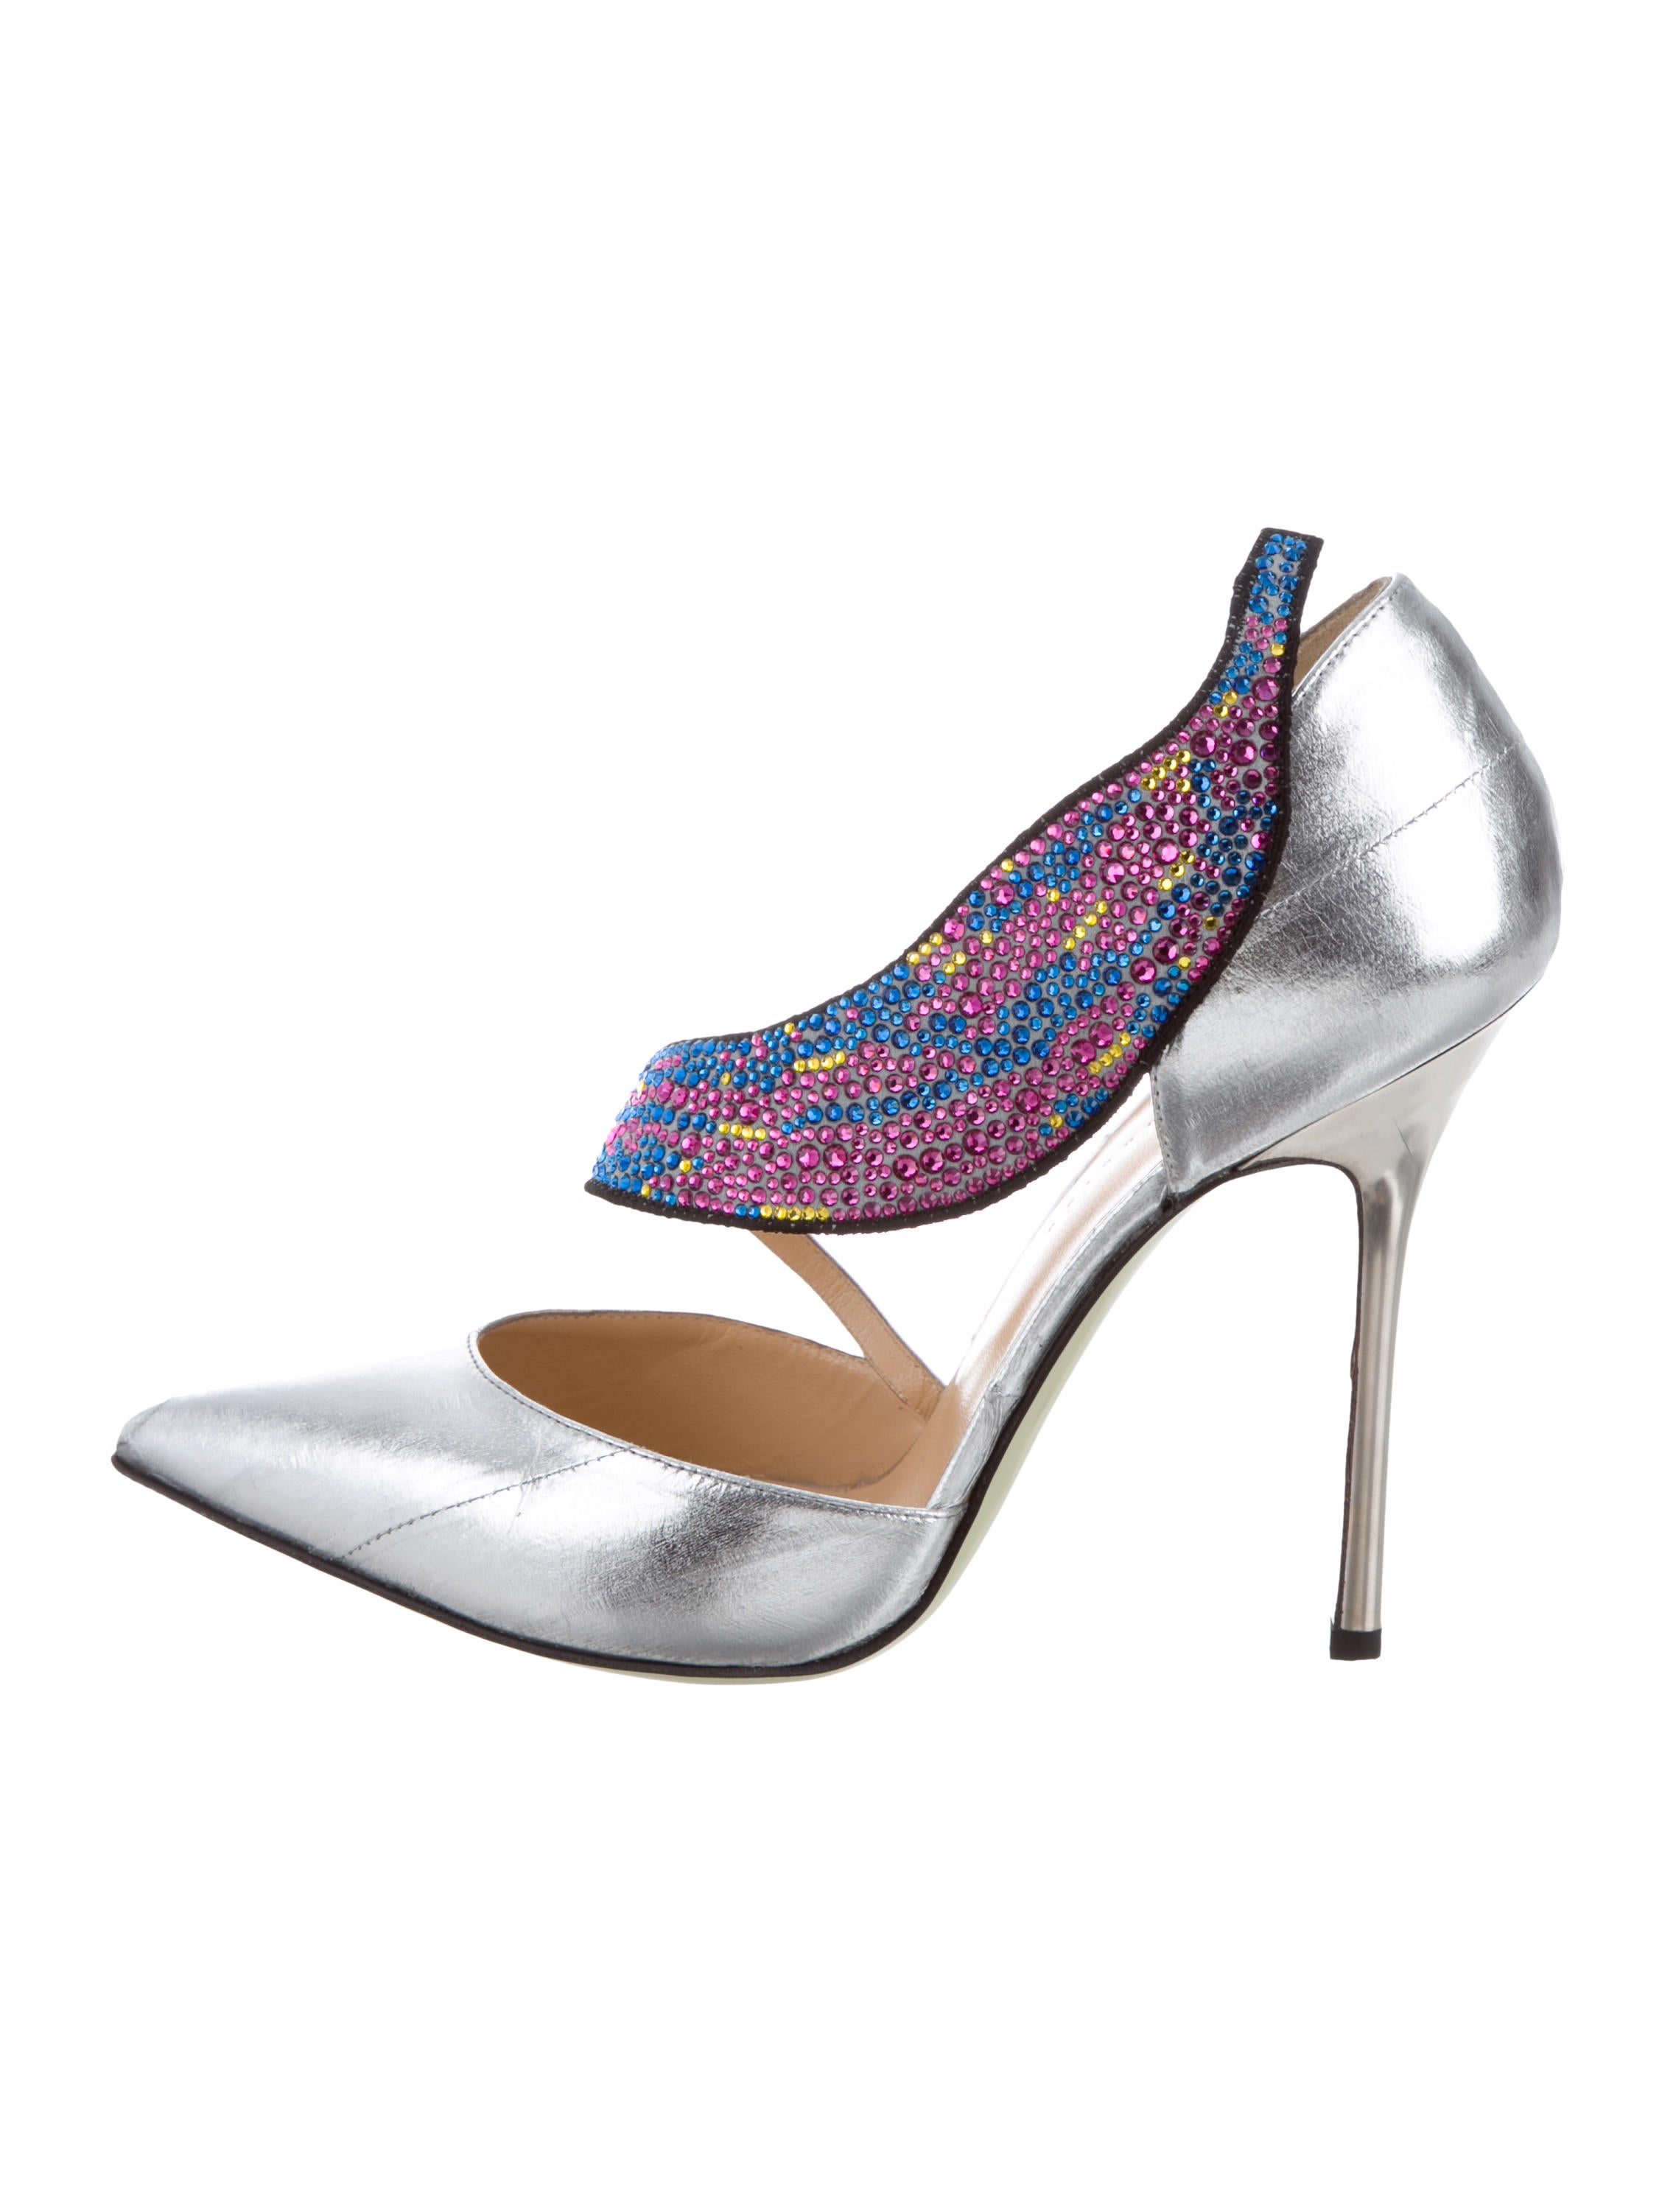 purchase cheap price free shipping for nice Giannico Embellished Pointed-Toe Pumps w/ Tags A5z2SLkV